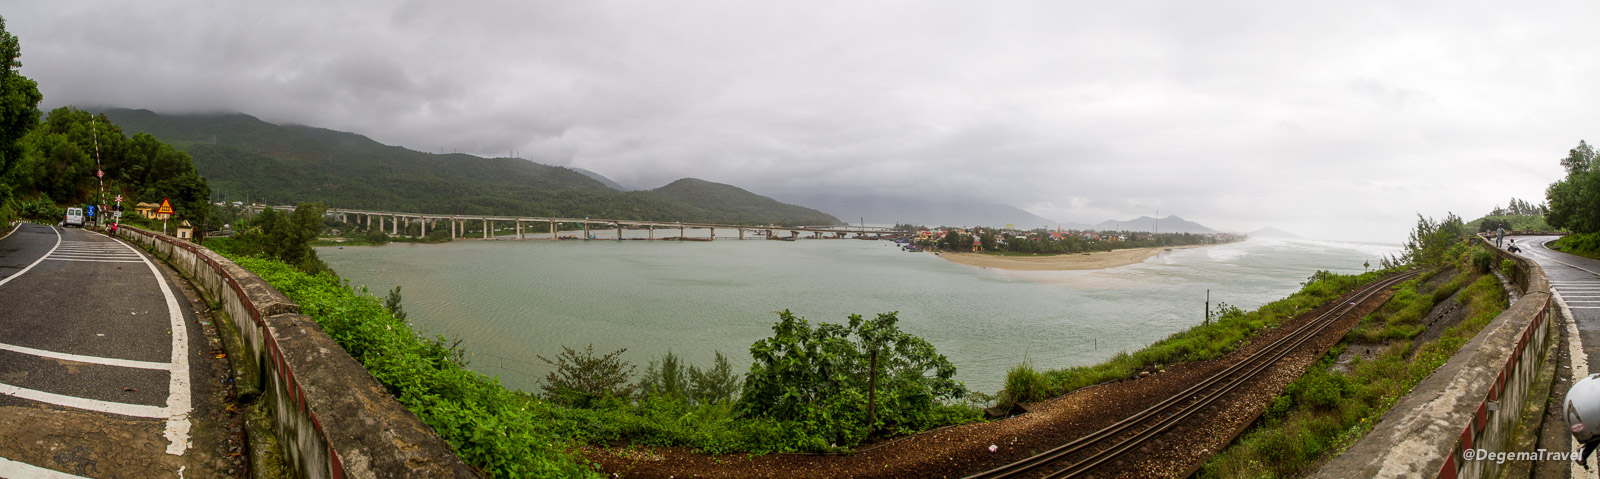 The entrance to the Lăng Cô Lagoon, viewed from the Hải Vân Pass, Vietnam